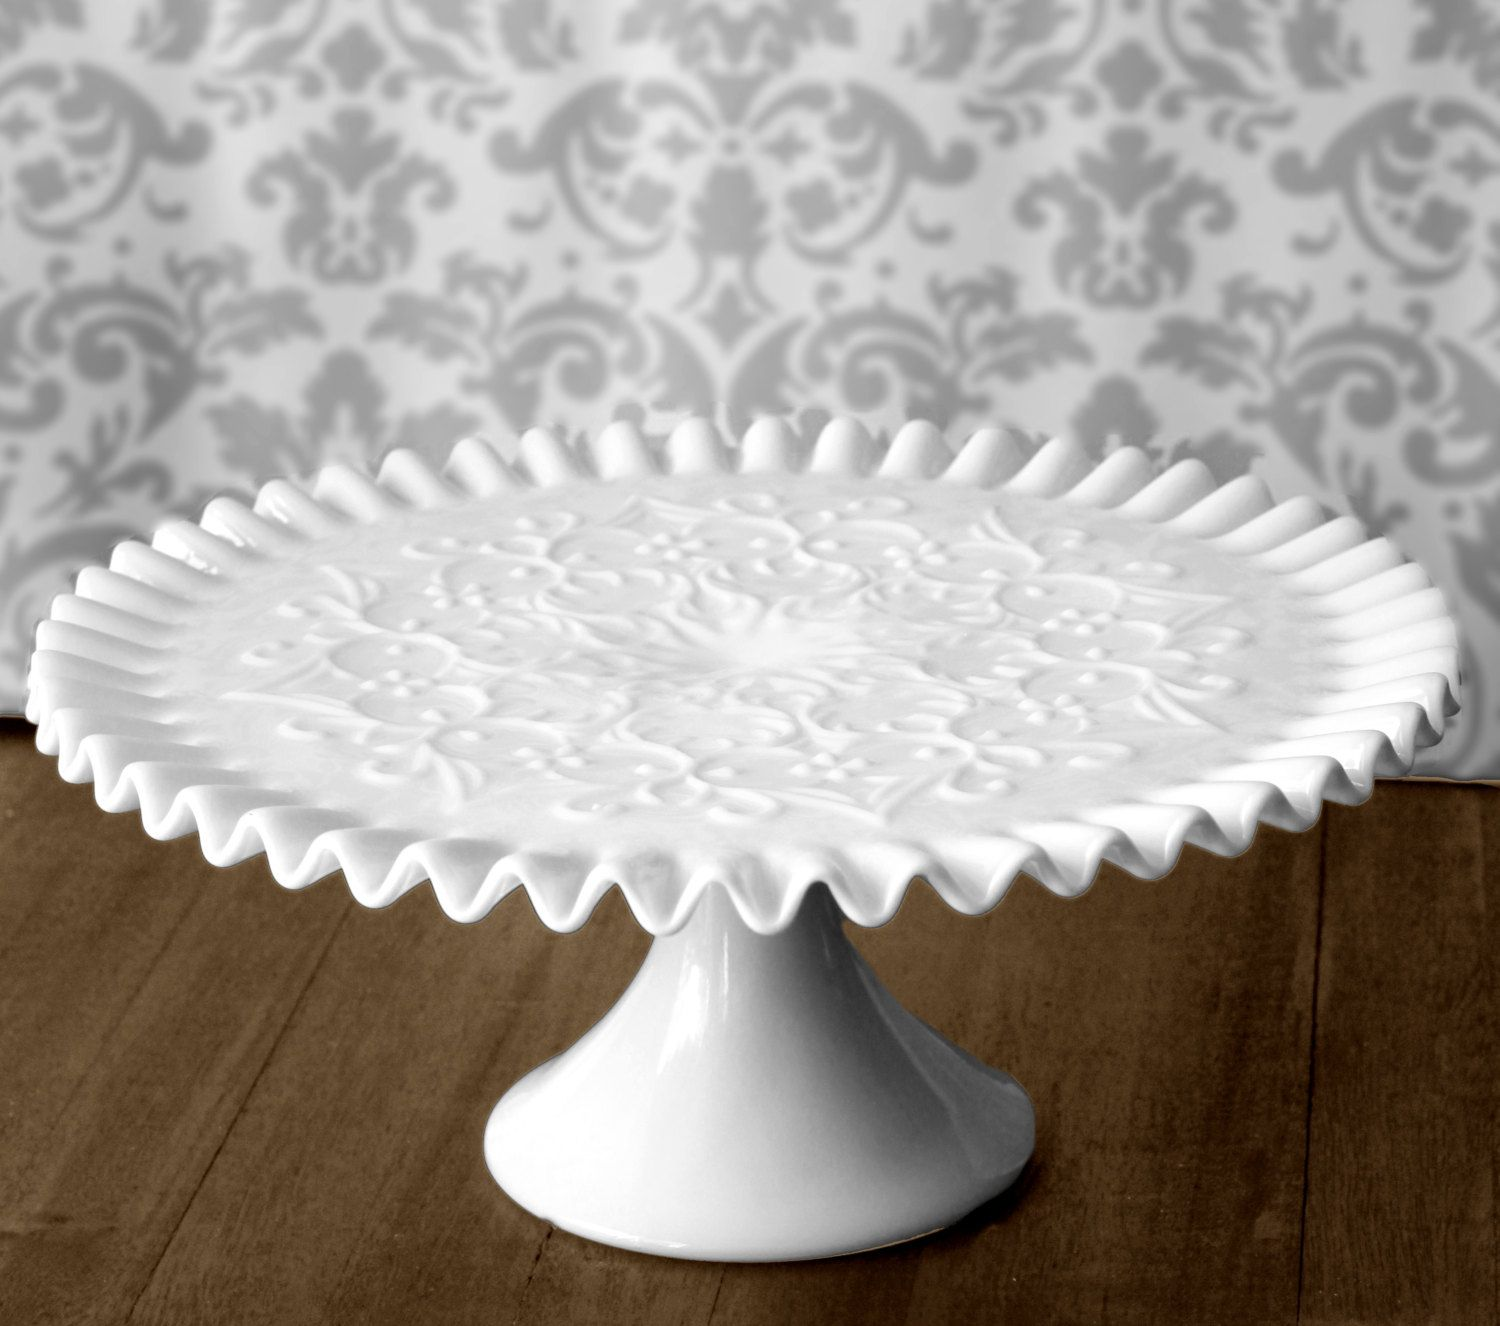 Milk Glass Cake Stand Vintage Cake Stand Cake Pedestal for Classic